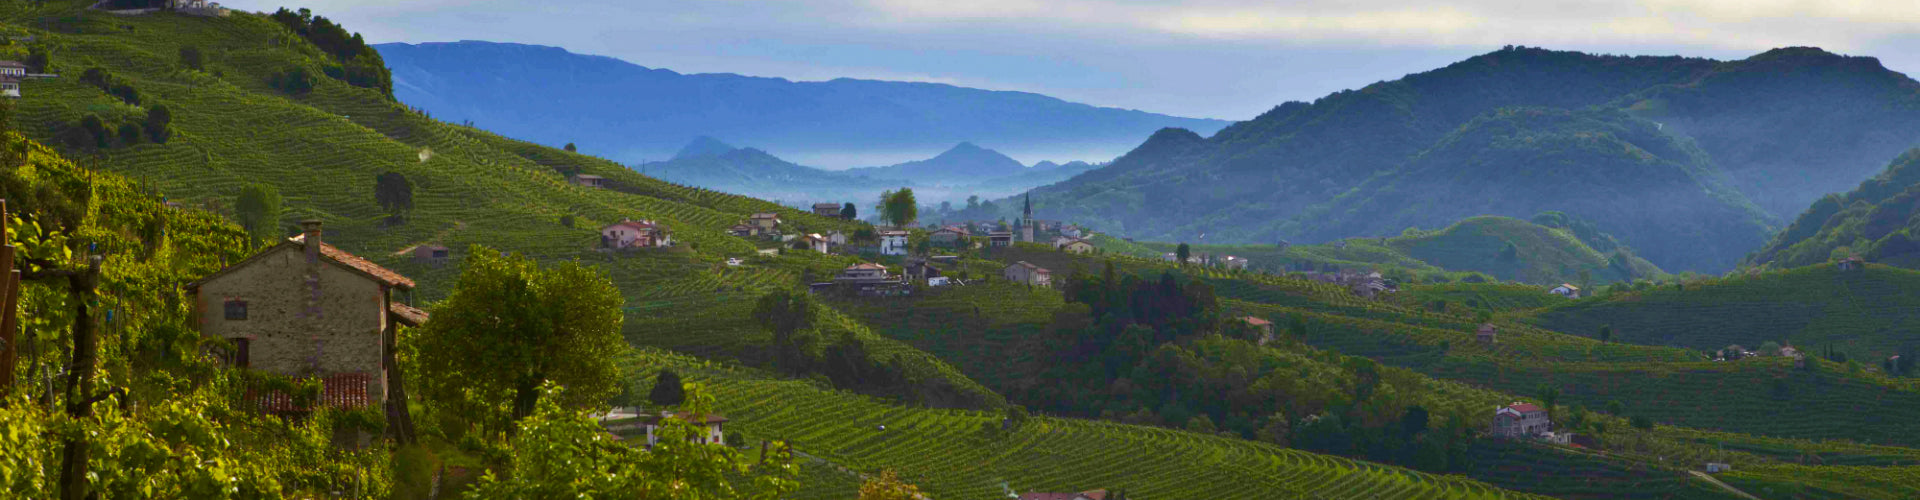 Le Colture Prosecco Vineyards Italy